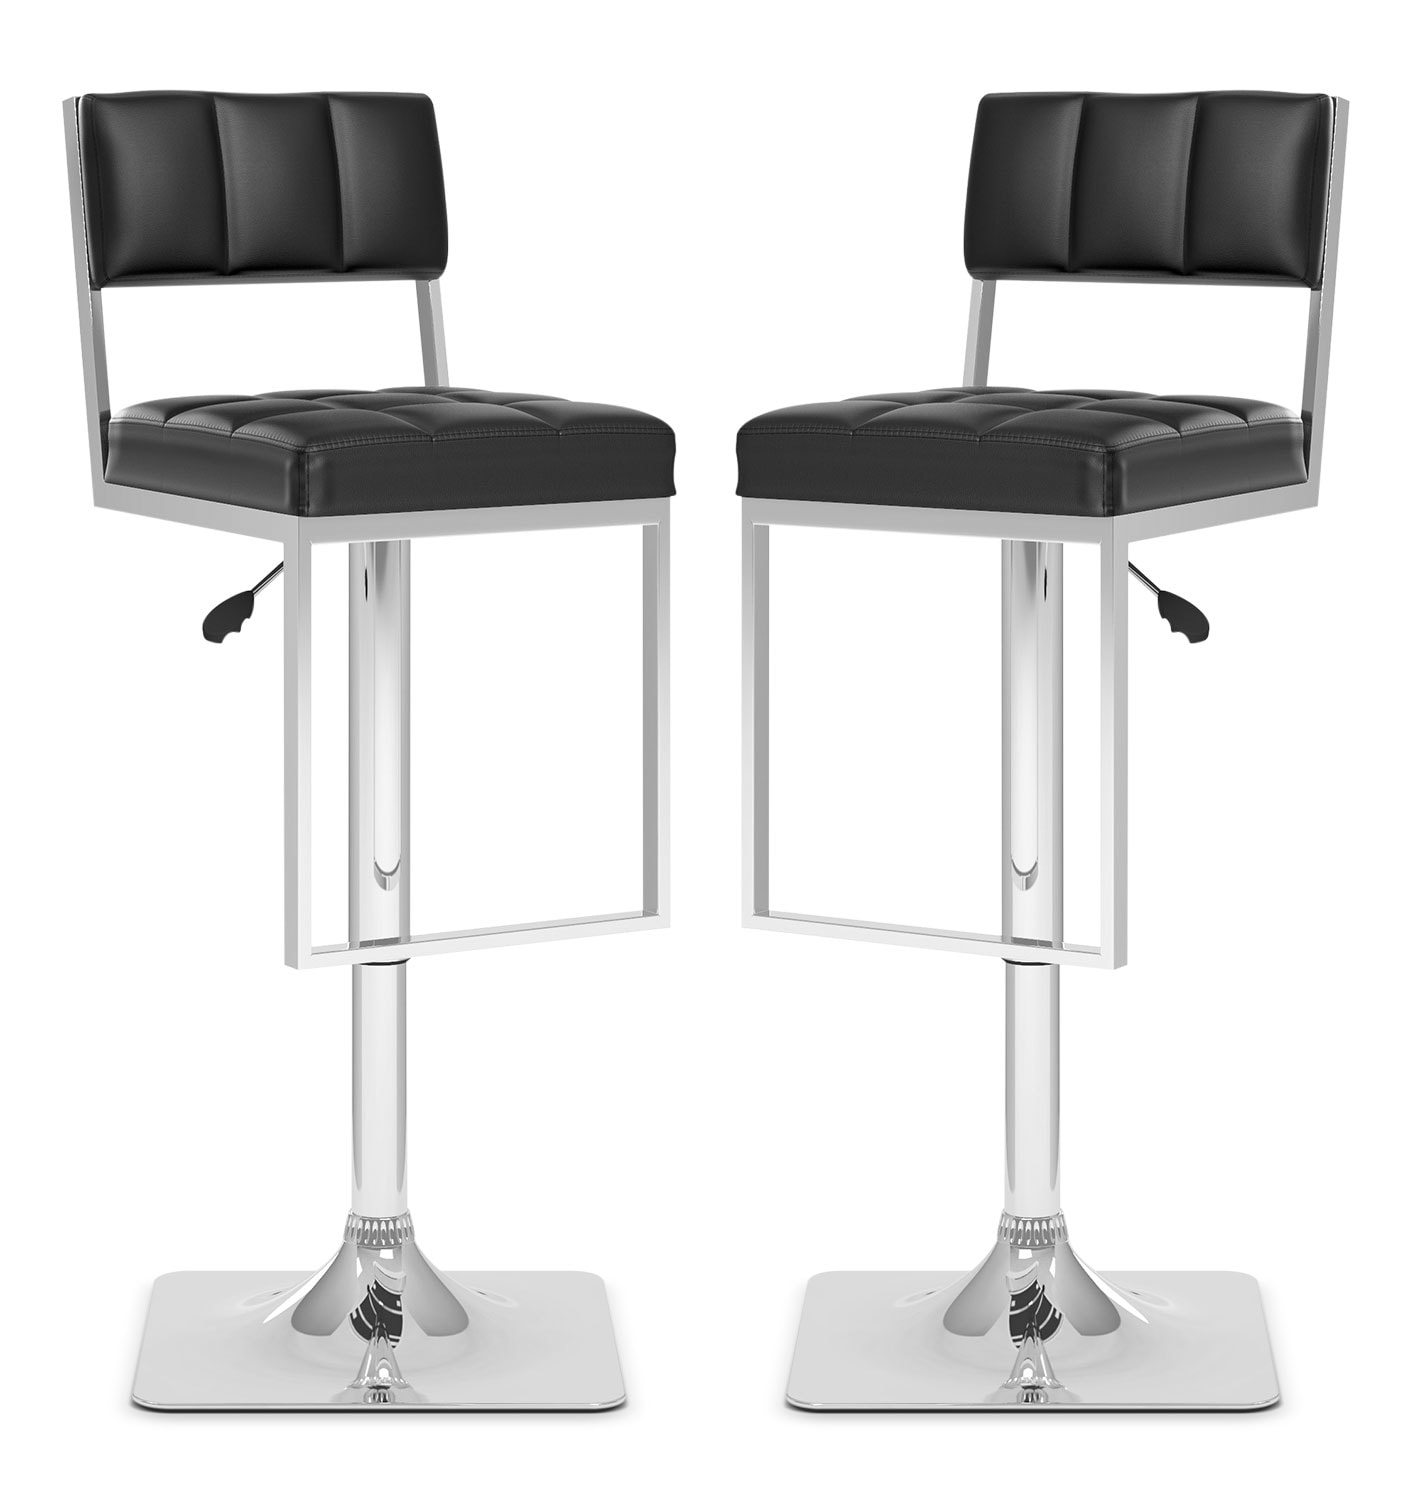 CorLiving Square Tufted Wide Adjustable Bar Stool Set of 2 Black